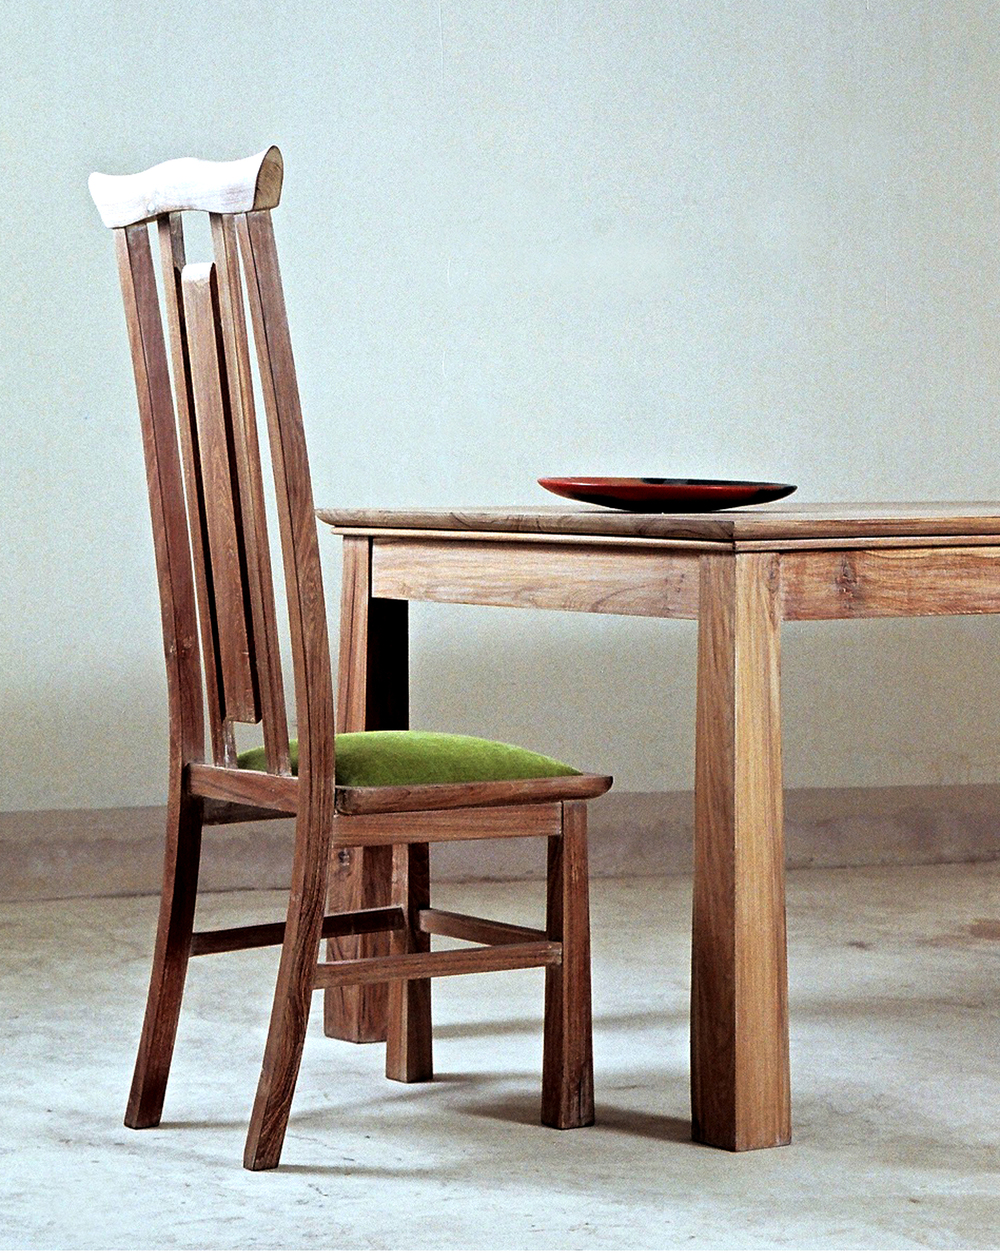 Sikkim Dining Table & Chair